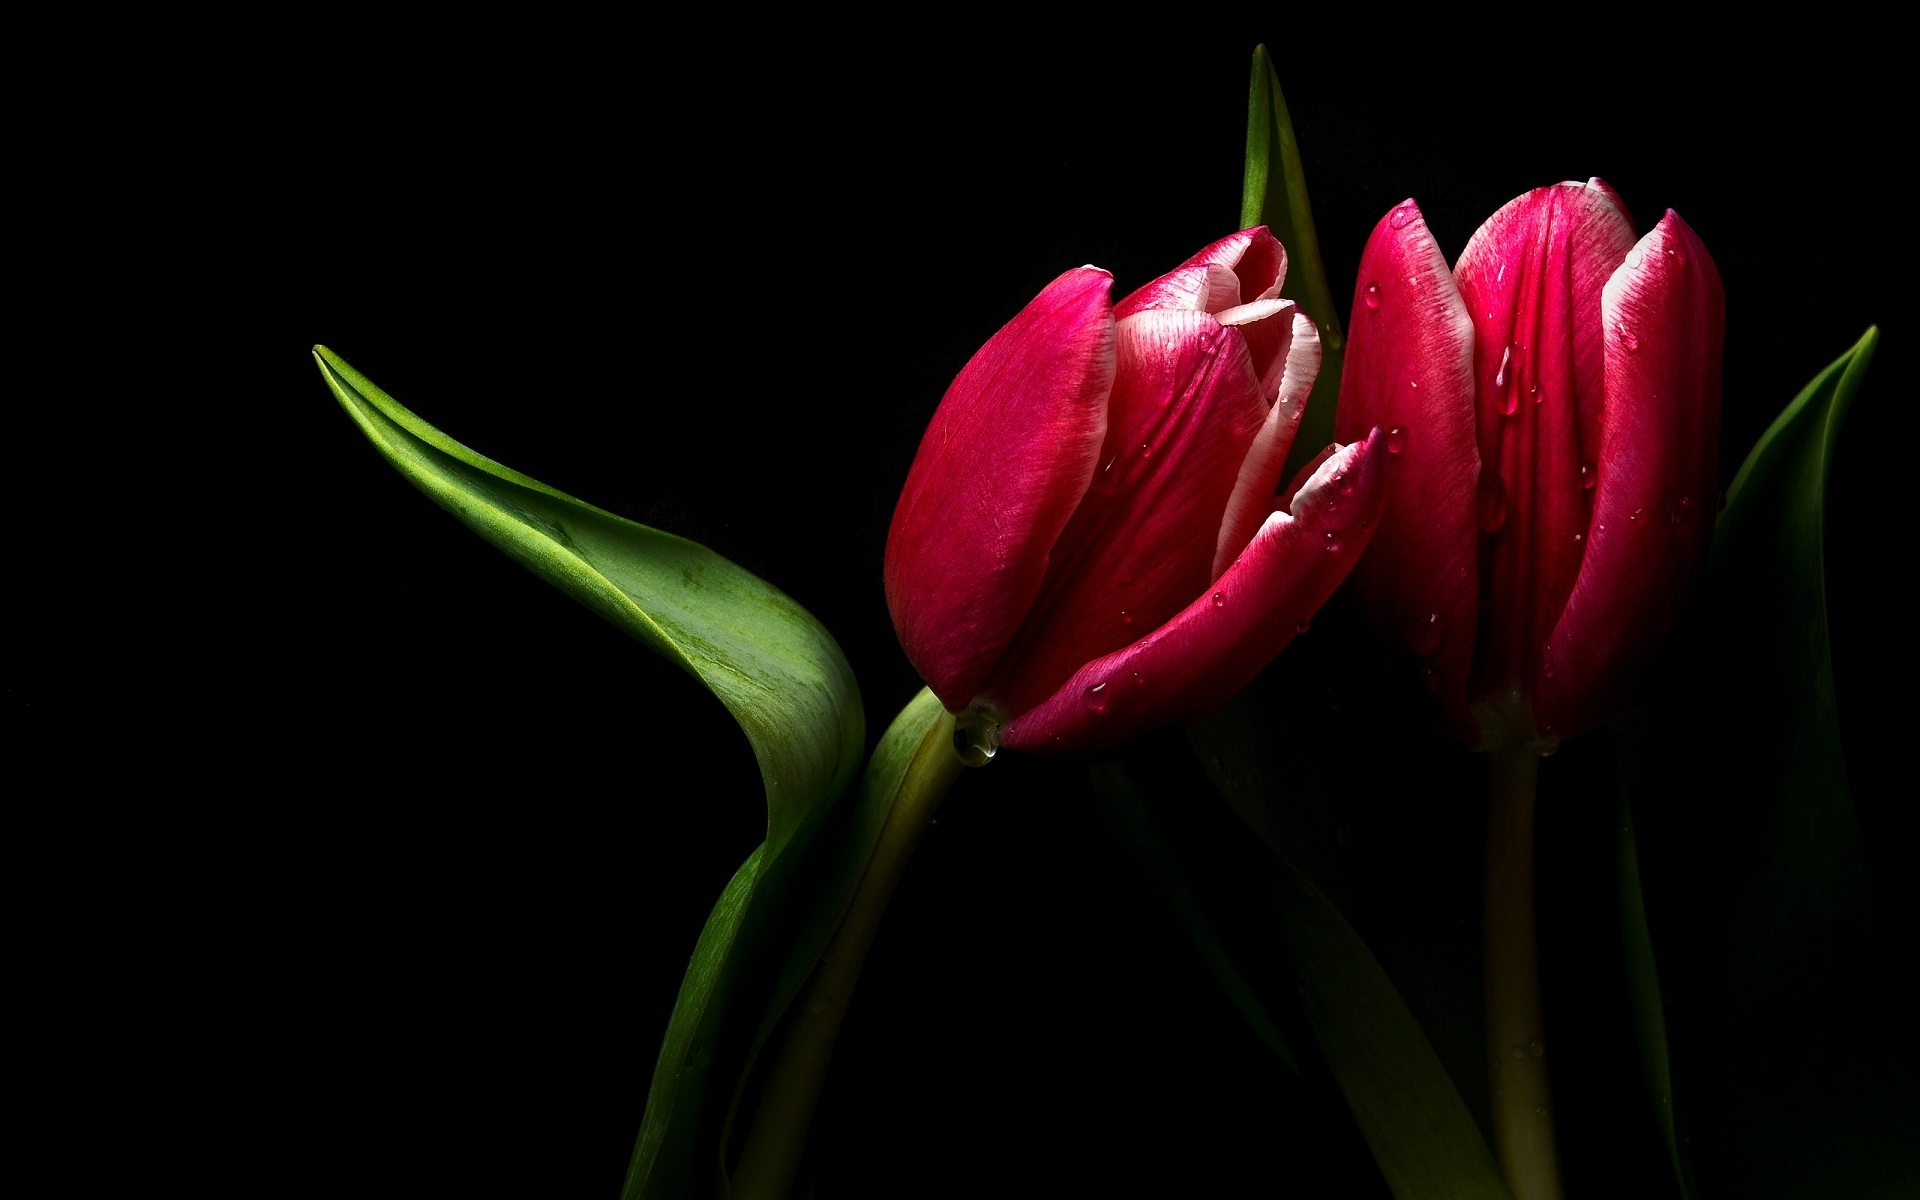 http://www.jkahir.com/wp-content/uploads/2017/11/Red-Tulip-And-Green-Leaves-On-Black-Nature.jpg